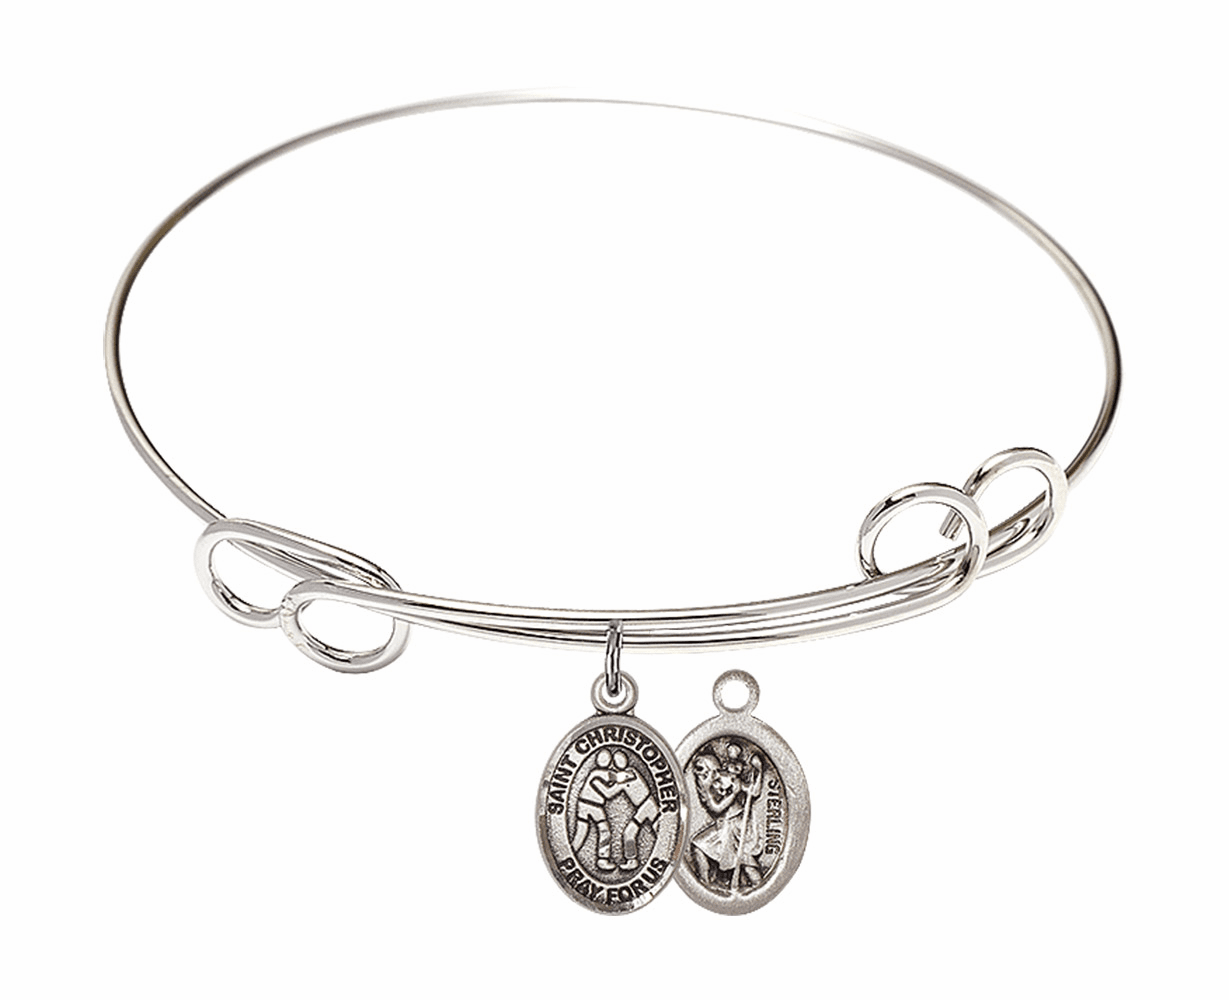 Round Loop St Christopher Wrestling Bangle Charm Bracelet by Bliss